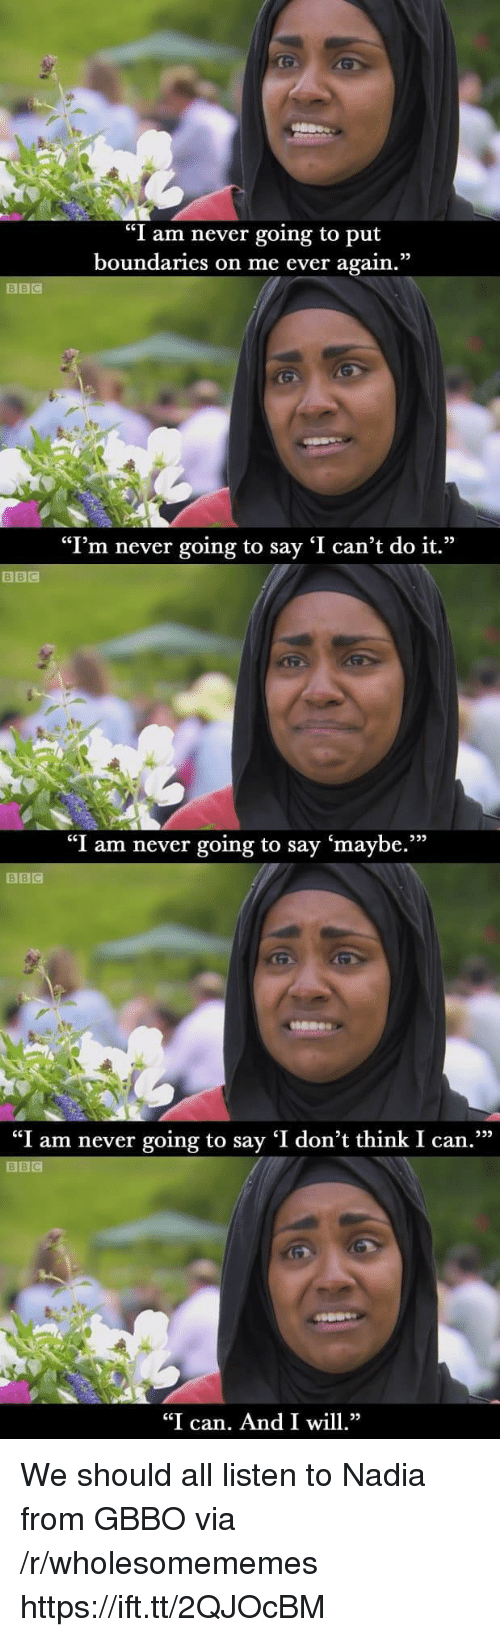 """Nadia: """"I am never going to put  boundaries on me ever again.""""  """"I'm never going to say 'I can't do it.""""  BBIC  """"I am never going to say 'maybe.""""""""  BBC  """"I am never going to say 'I don't think I can.  BBC  """"I can. And I wl We should all listen to Nadia from GBBO via /r/wholesomememes https://ift.tt/2QJOcBM"""